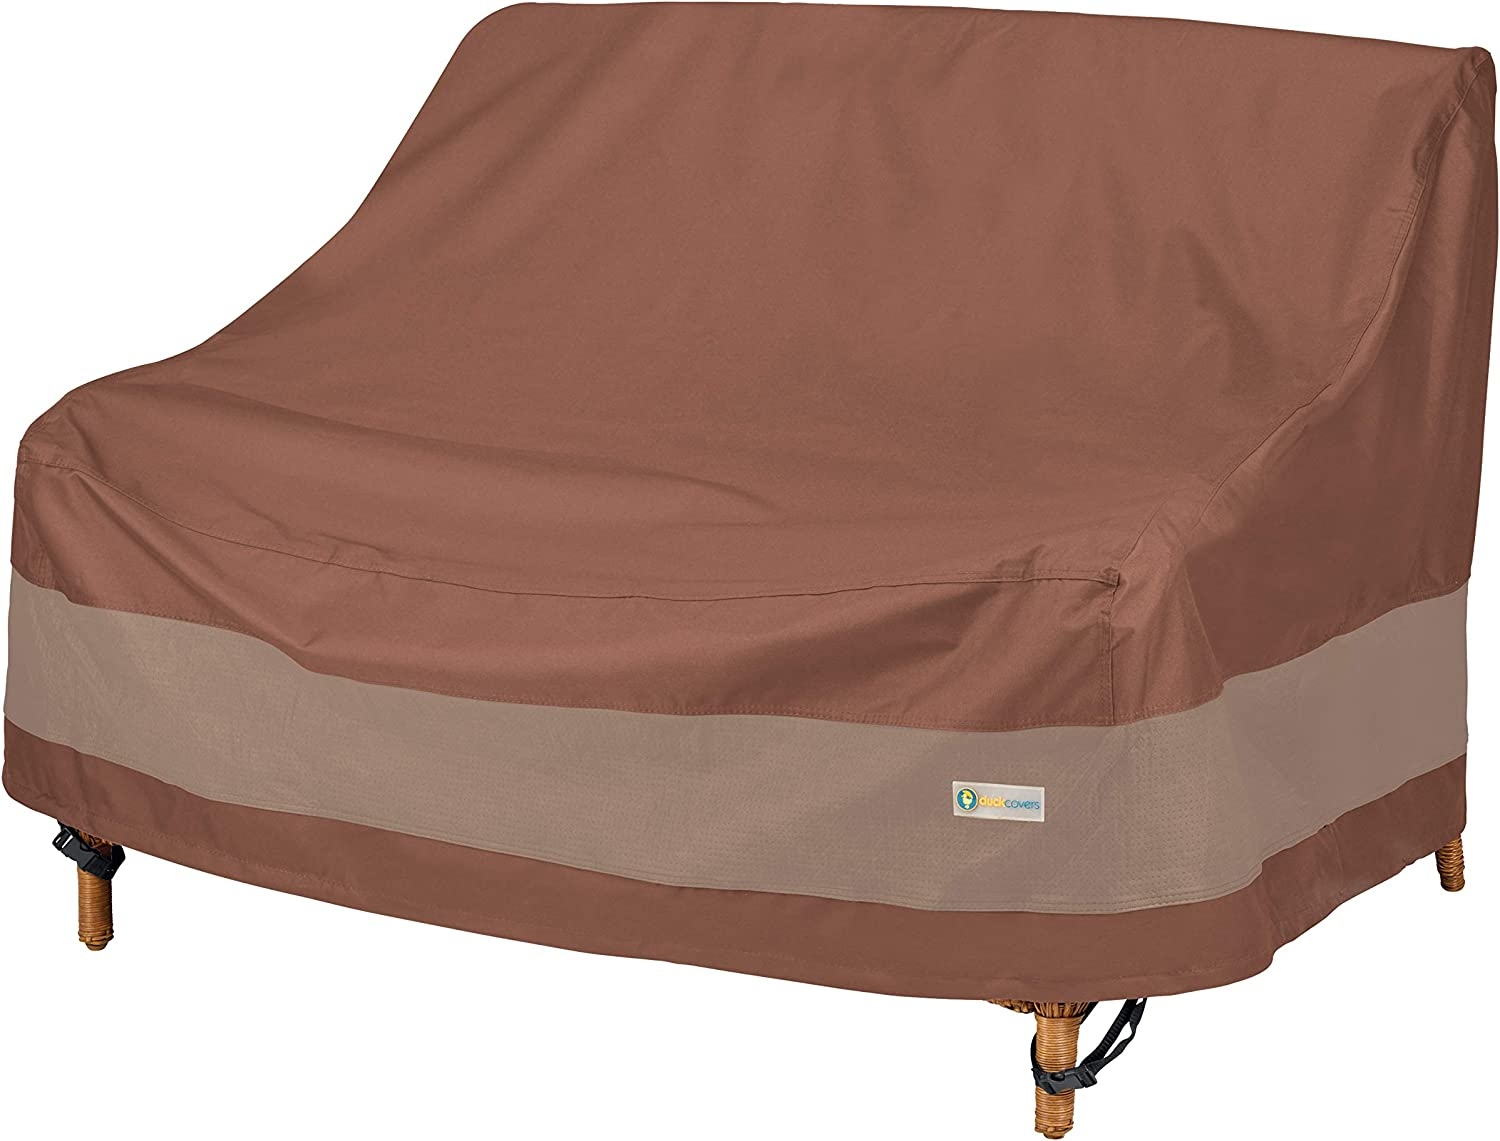 "Duck Covers Ultimate Deep Loveseat Cover 58"" Wide"